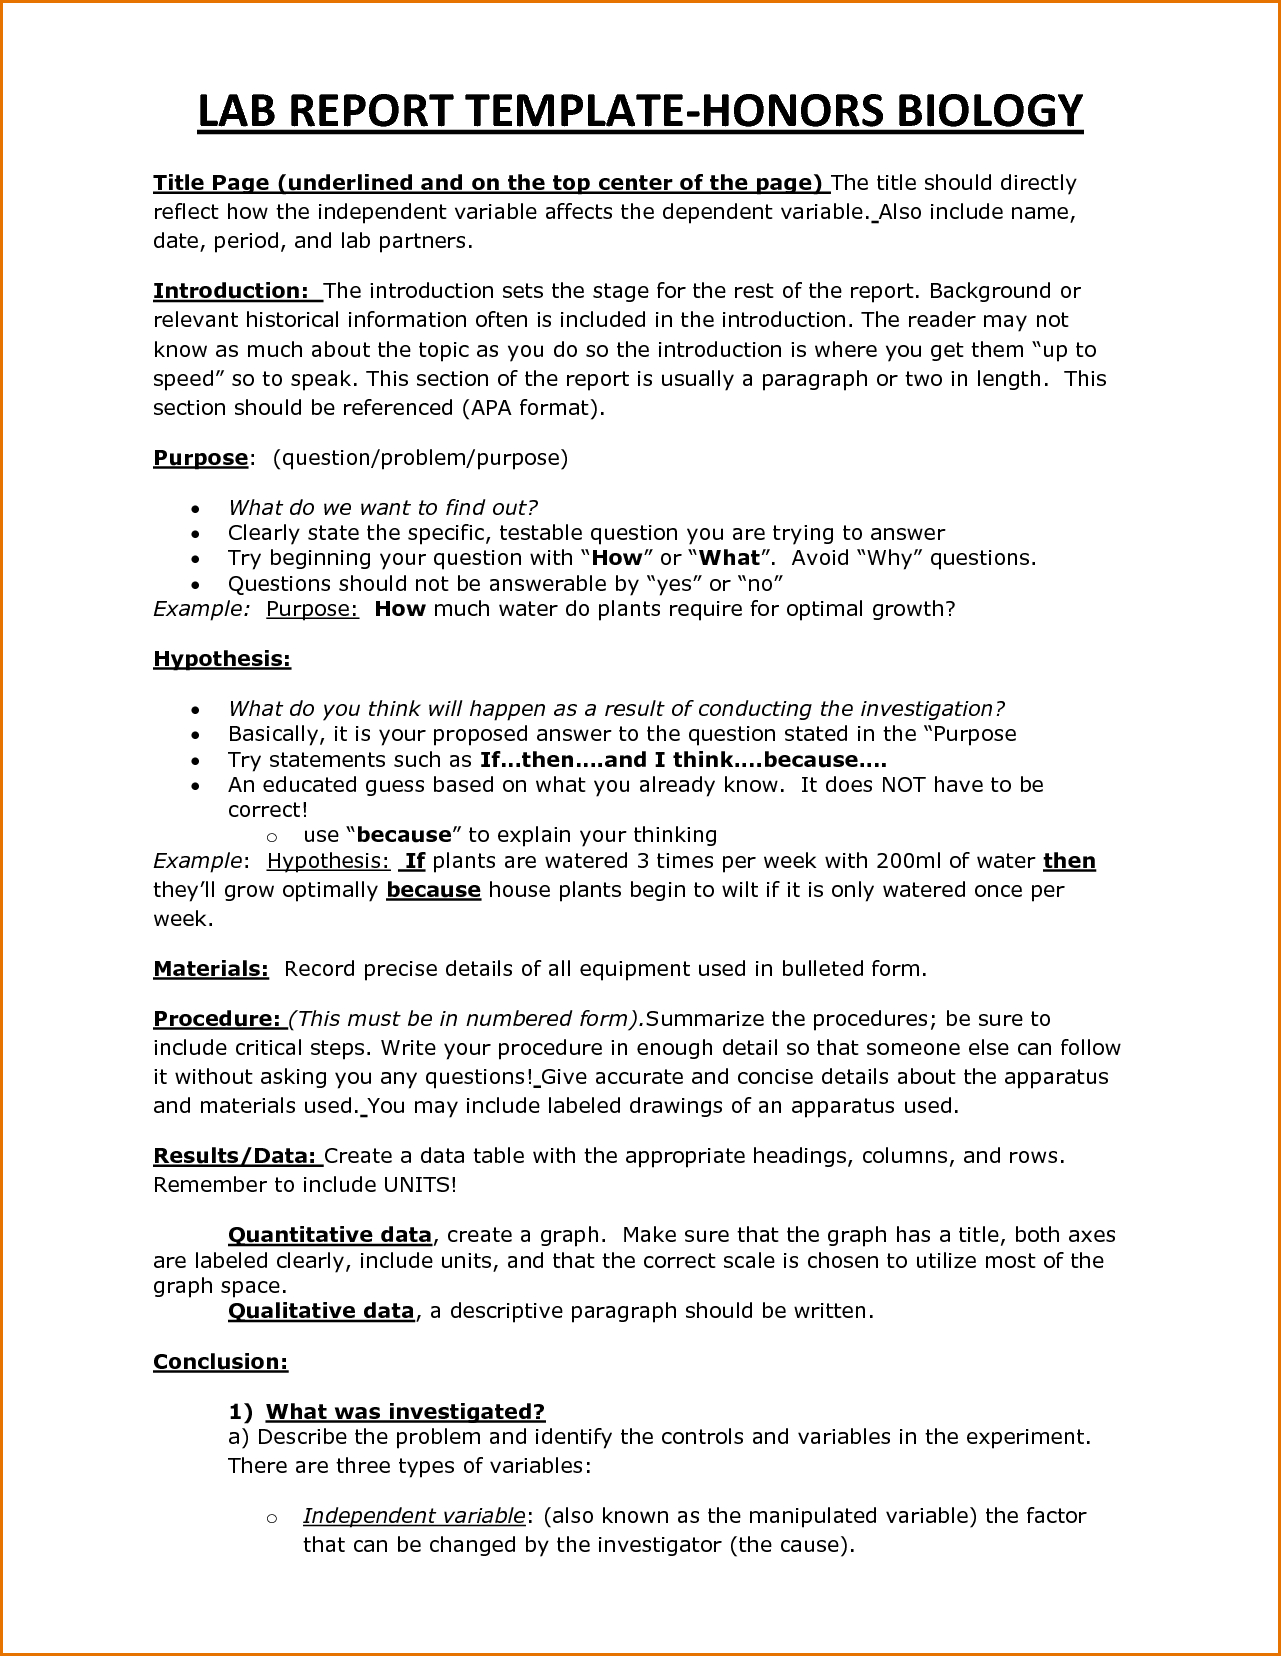 Lab Report Template Word Stupendous Ideas Engineering Project Throughout Lab Report Template Word